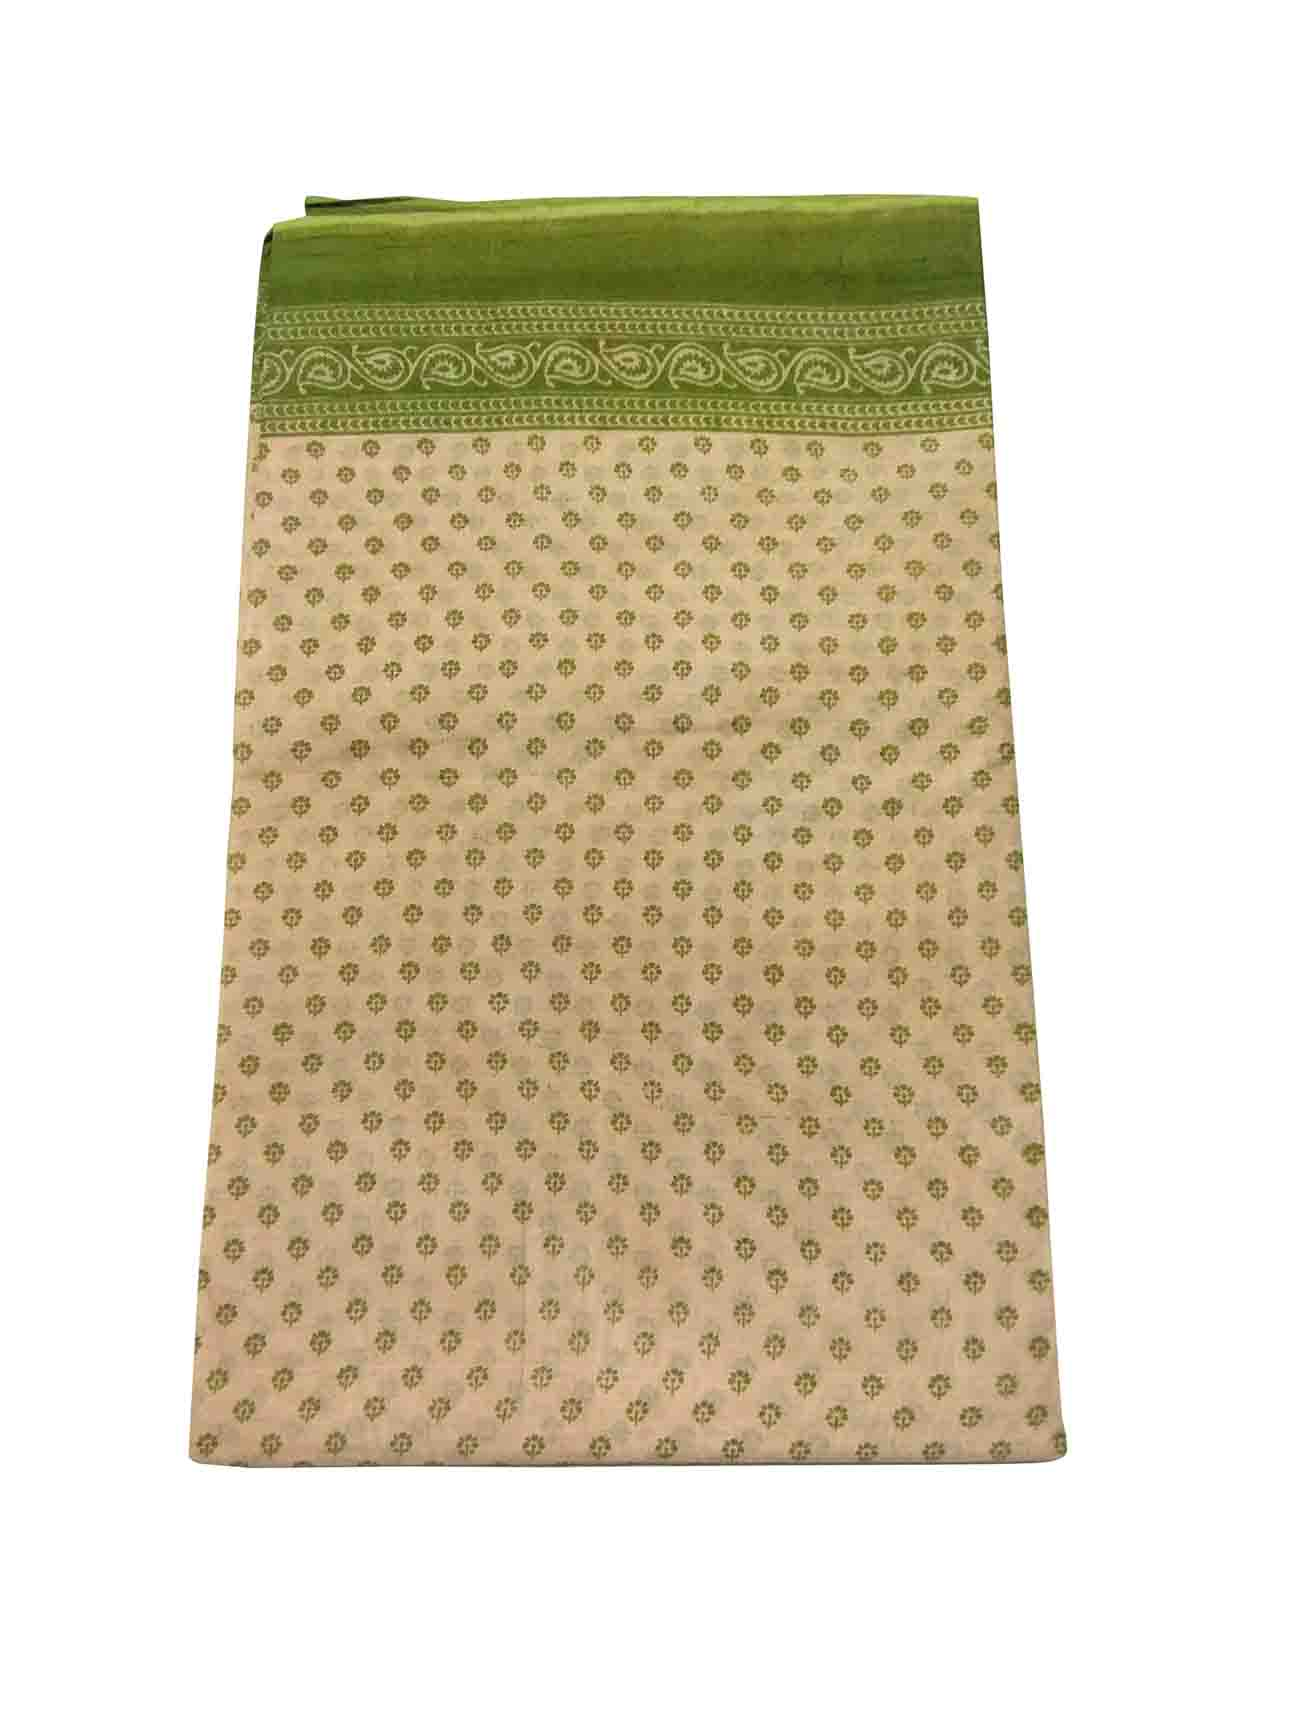 WMN COTTON SAREE WITHOUT BLOUSE-GREEN-AT COTTON PRINT D NO 3